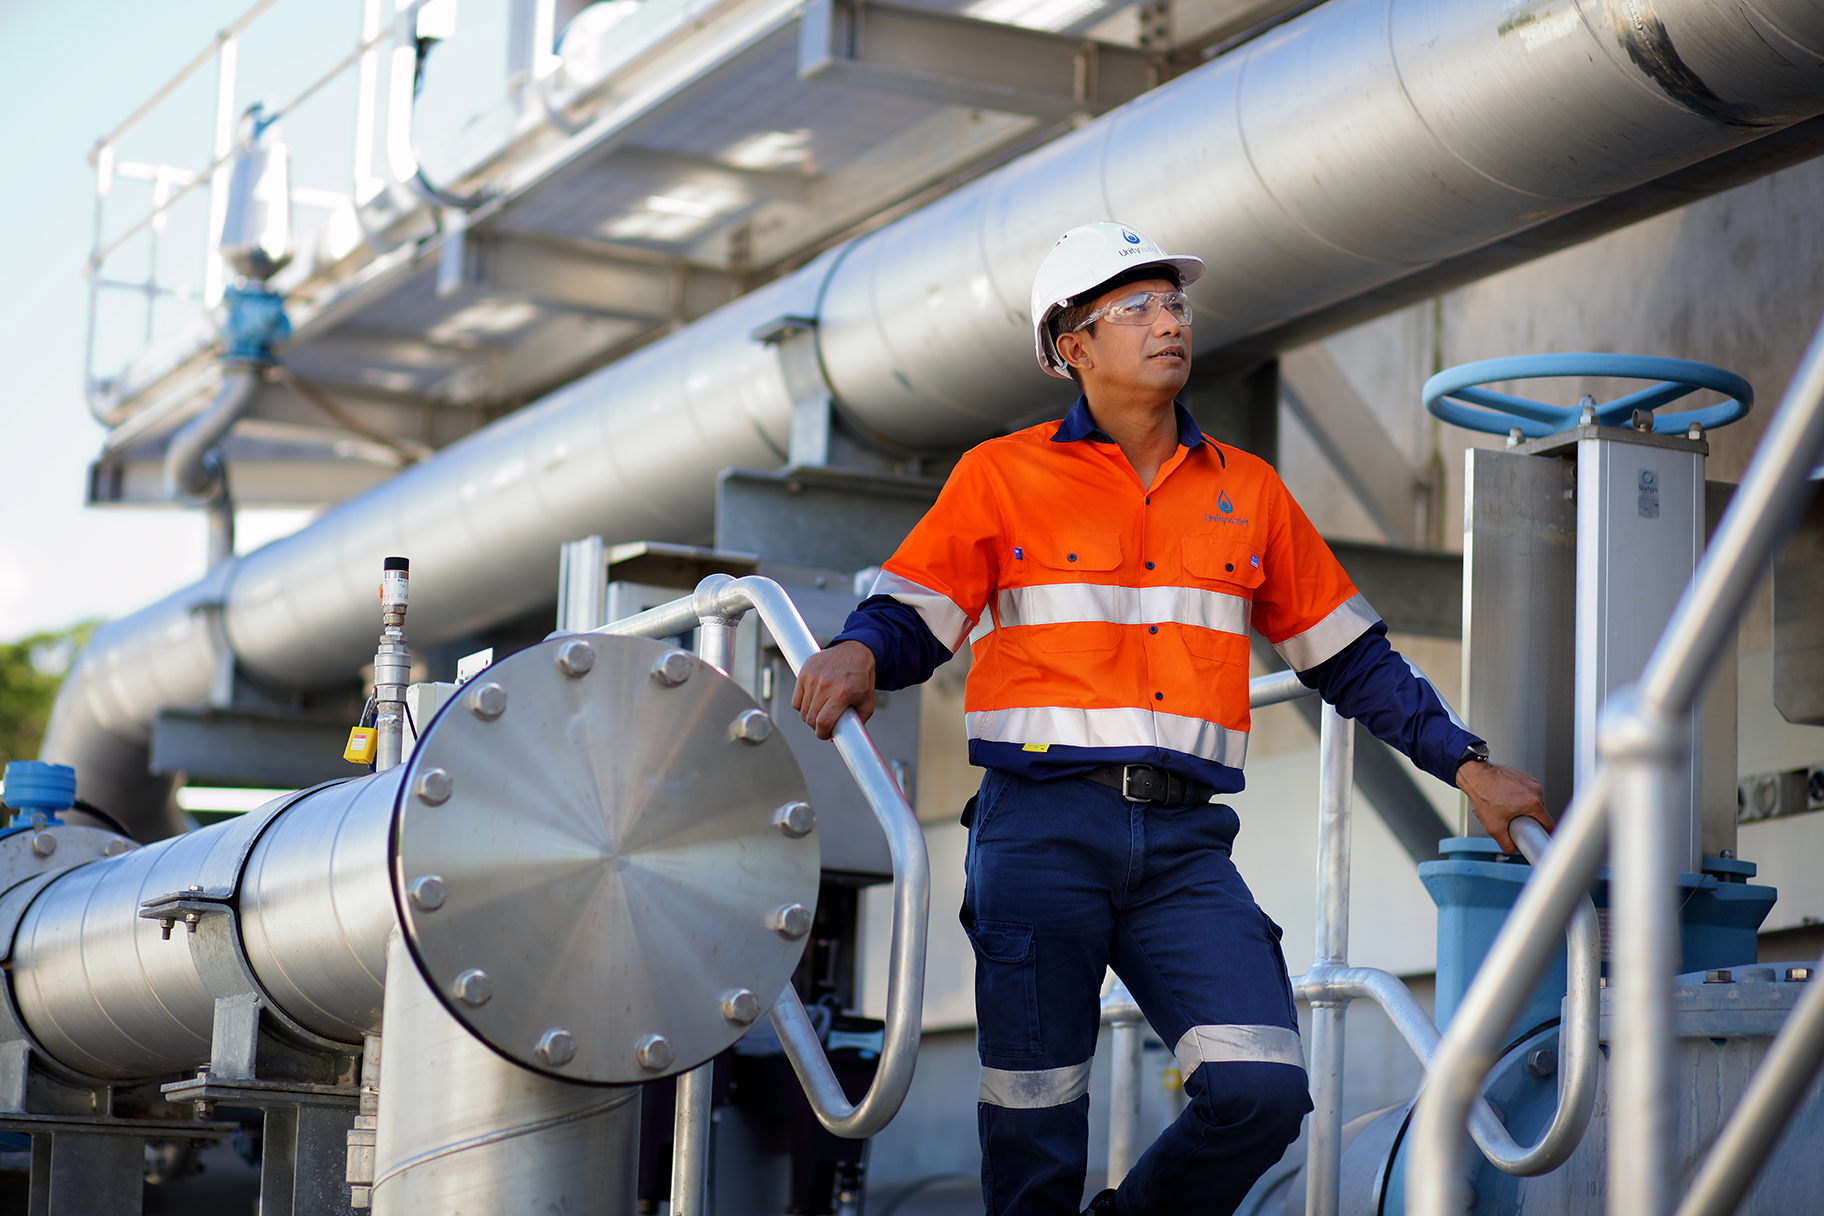 Male staff member at Nambour Sewage Treatment Plant